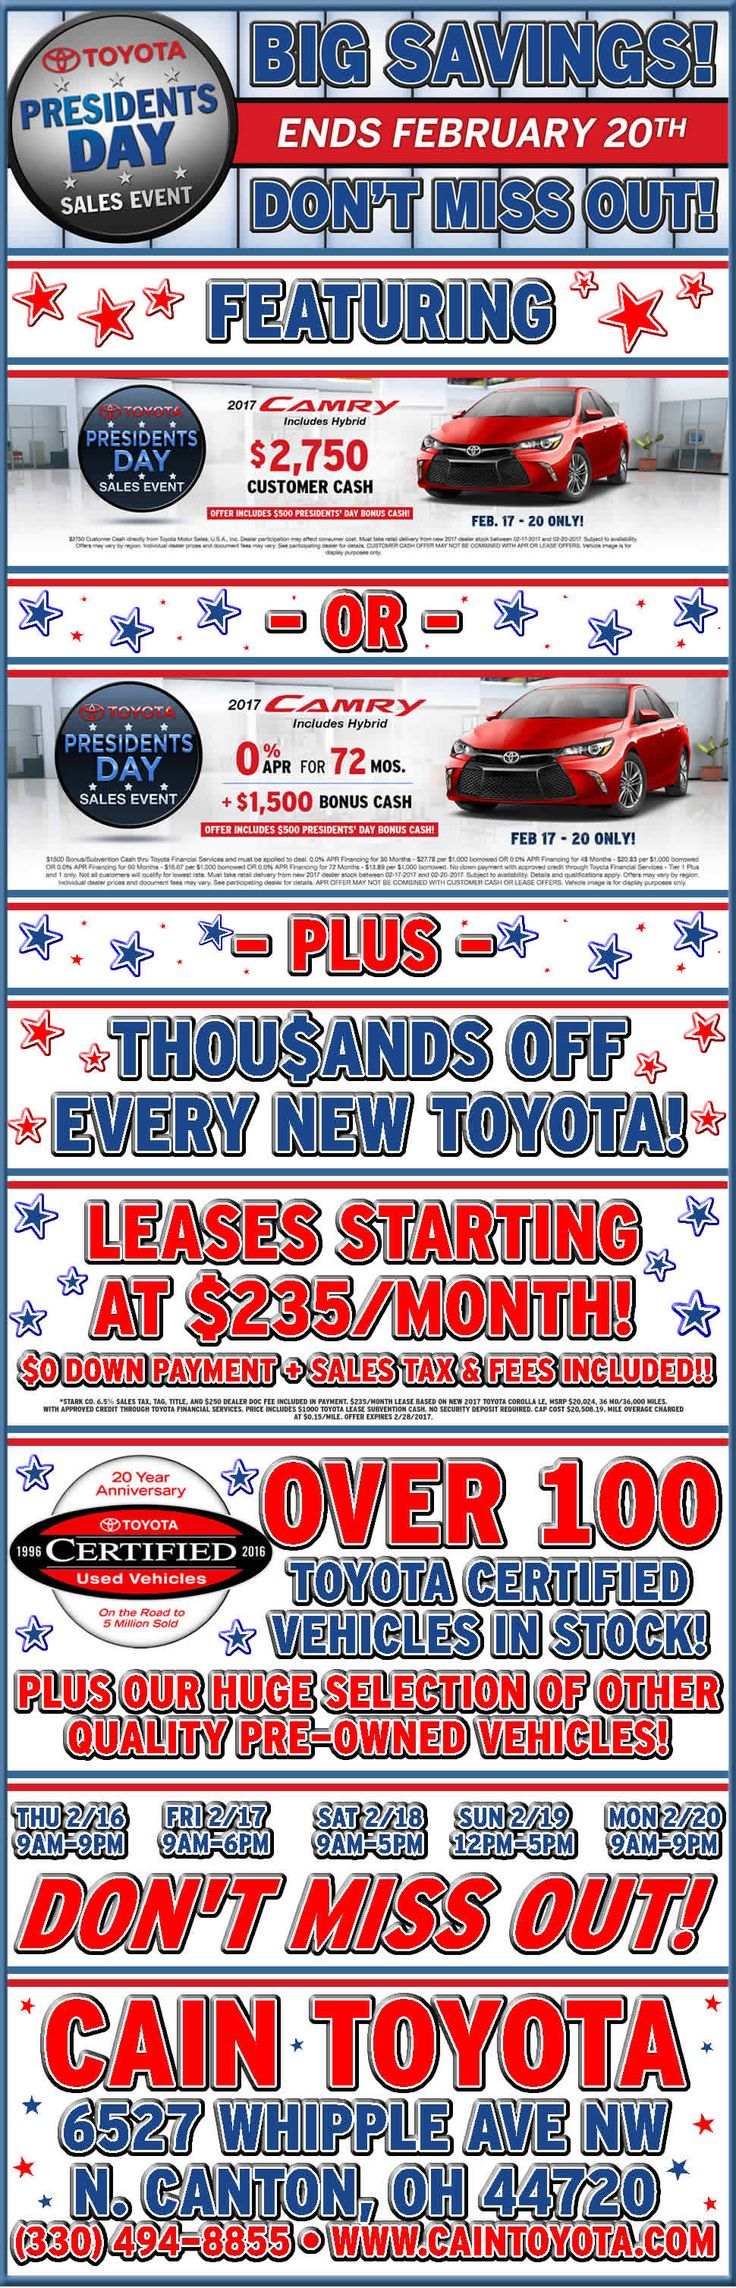 Stop in this weekend and check out our Presidents' Day Sales Event! (OPEN SUNDAY 12PM-5PM!) (Post Date 2/17/2017)